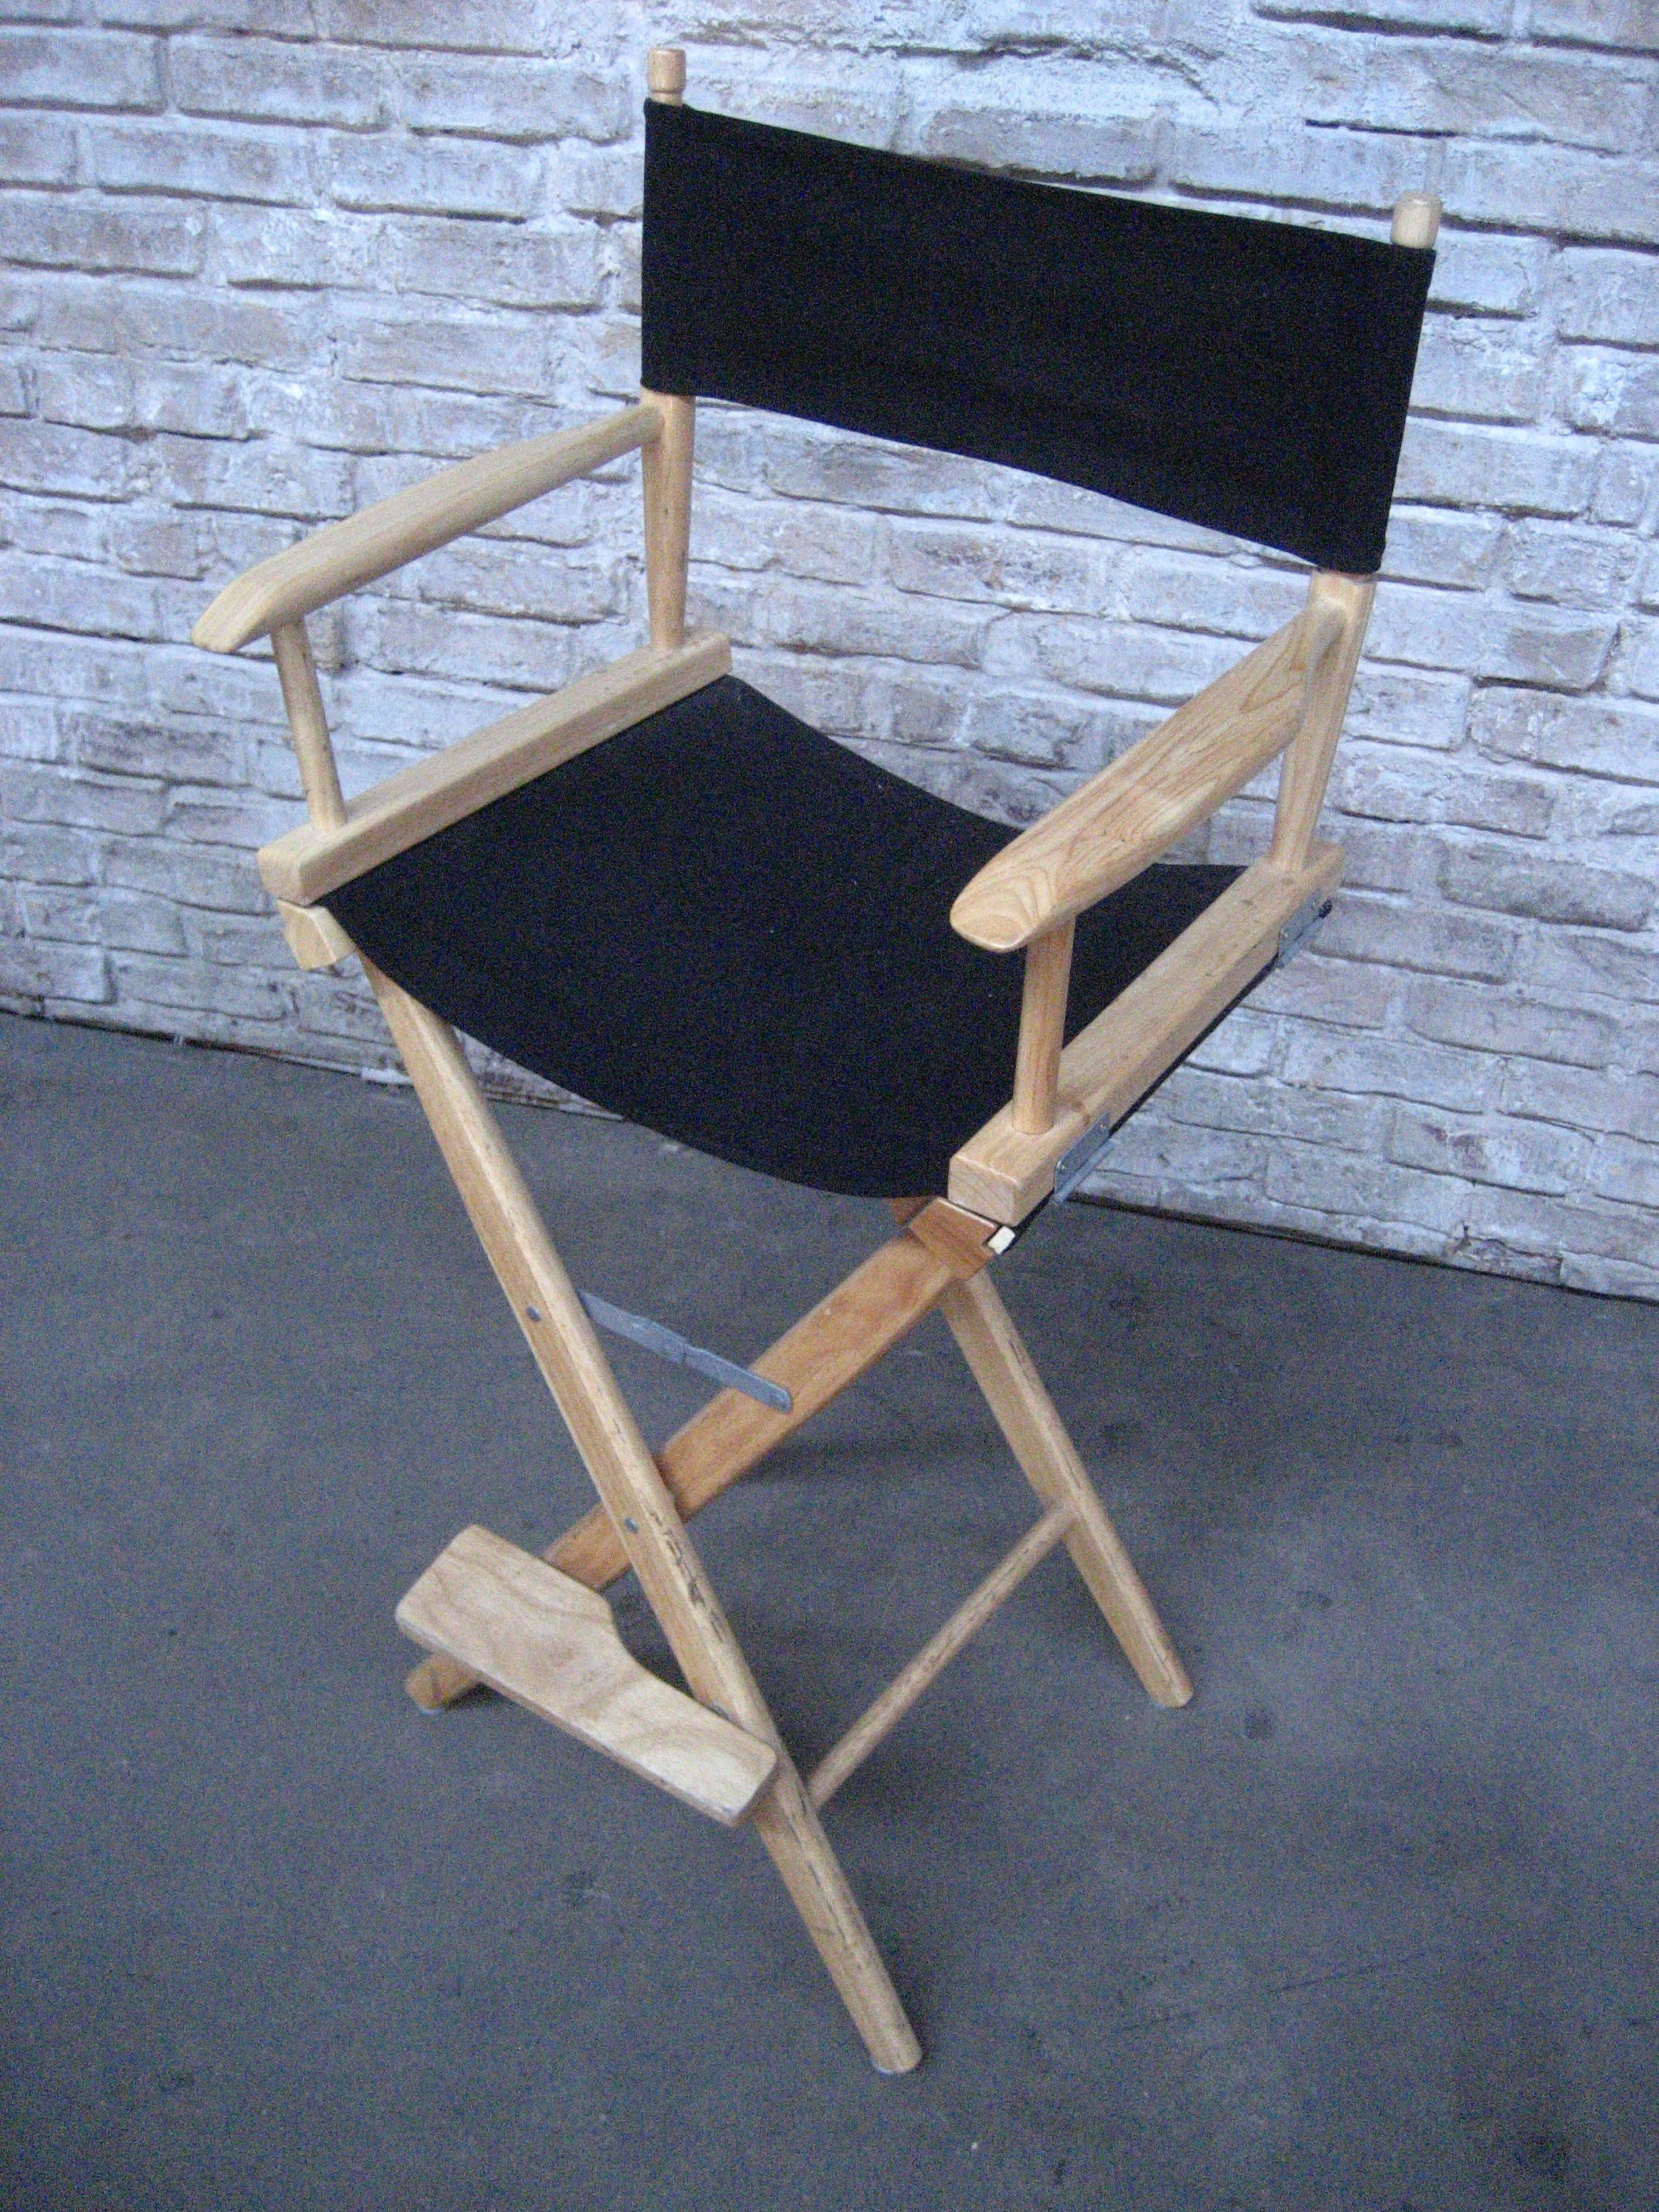 Tall Director's Chair Black and Light Wood $40